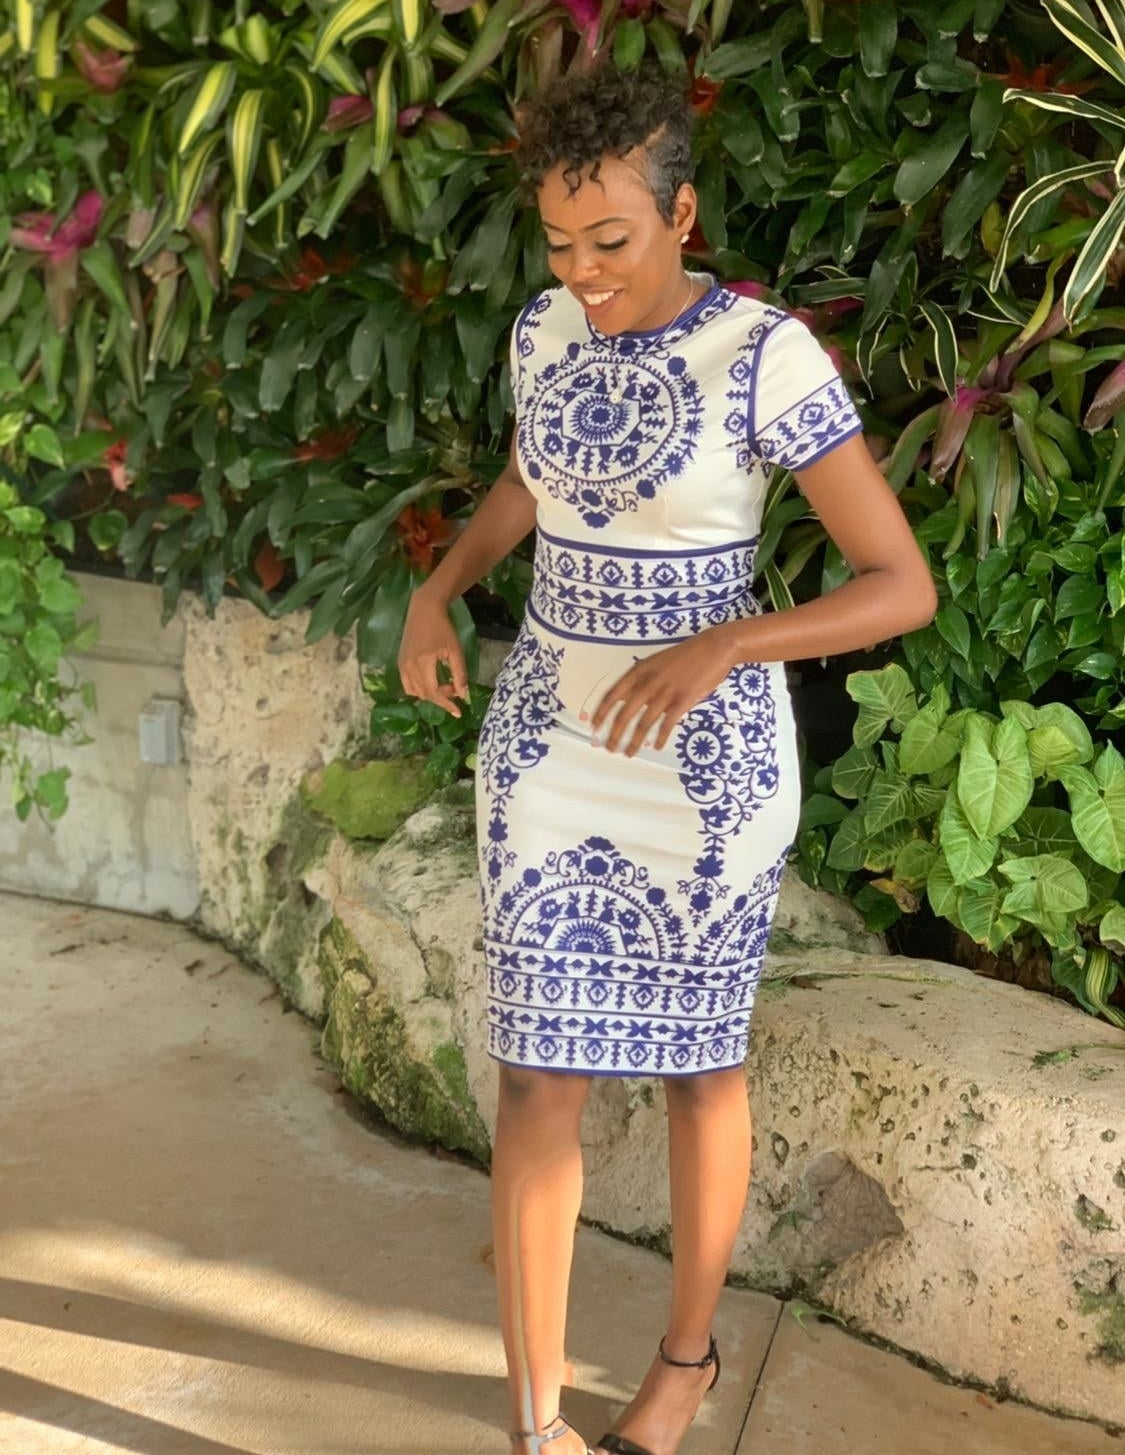 Reviewer wearing the short-sleeved dress in white with blue pattern all over